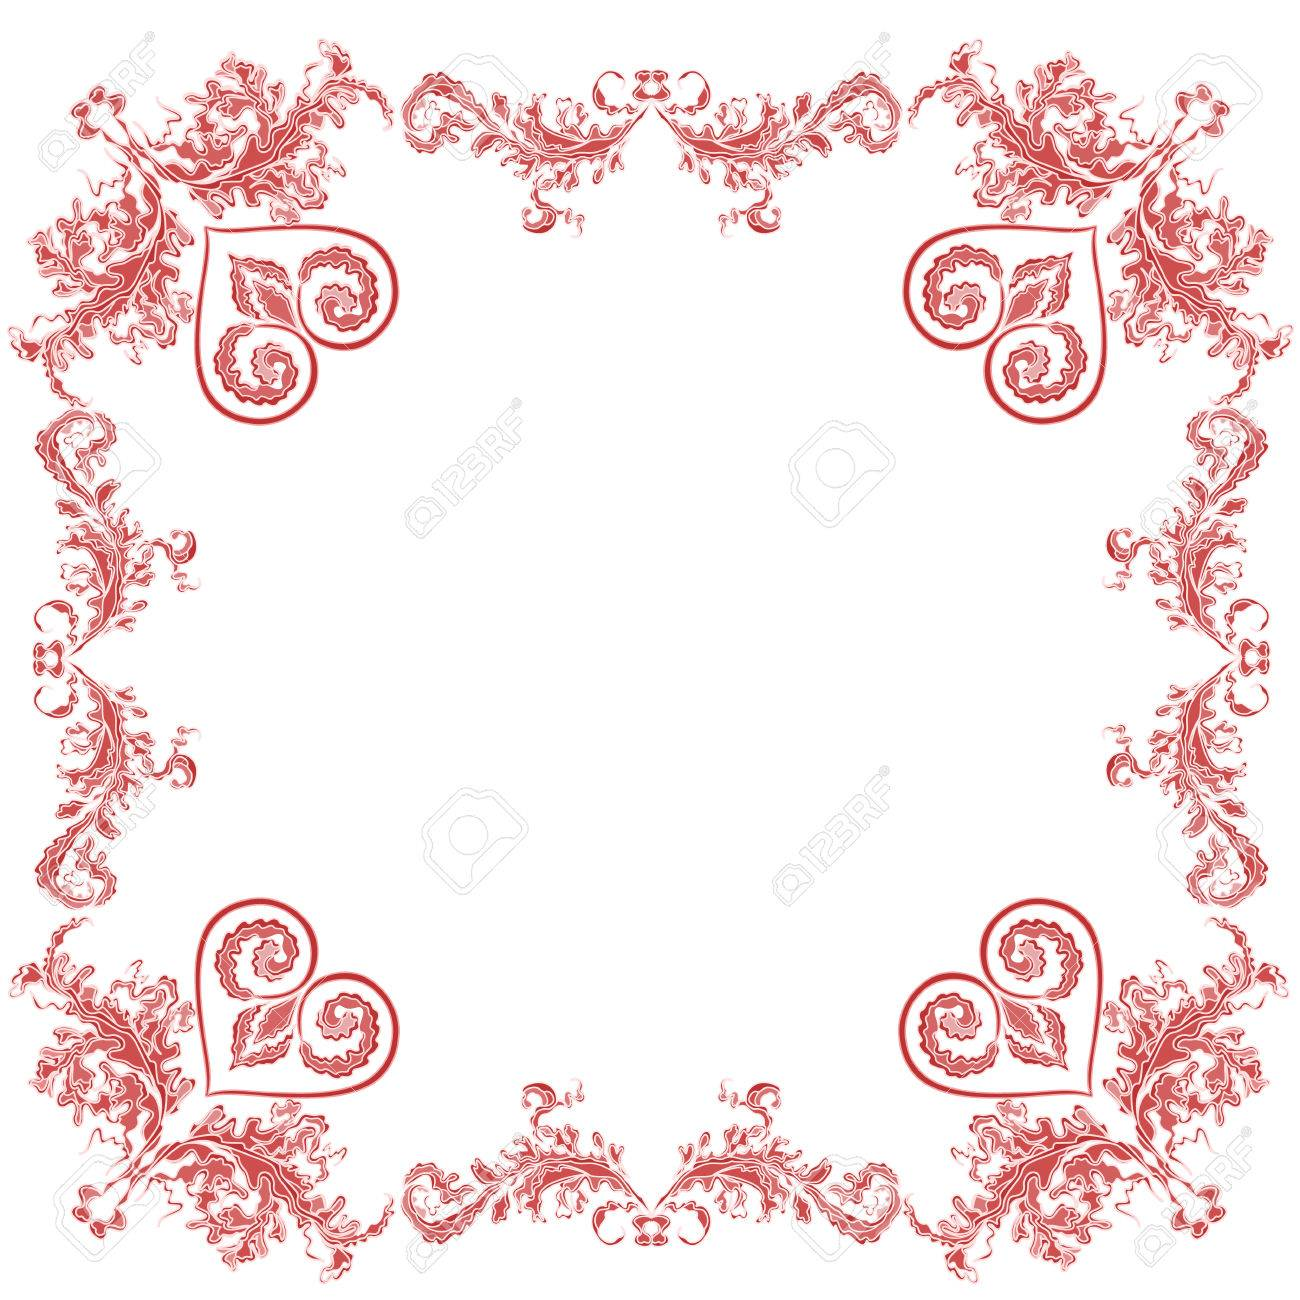 heart ornaments decorative frame royalty free cliparts vectors and